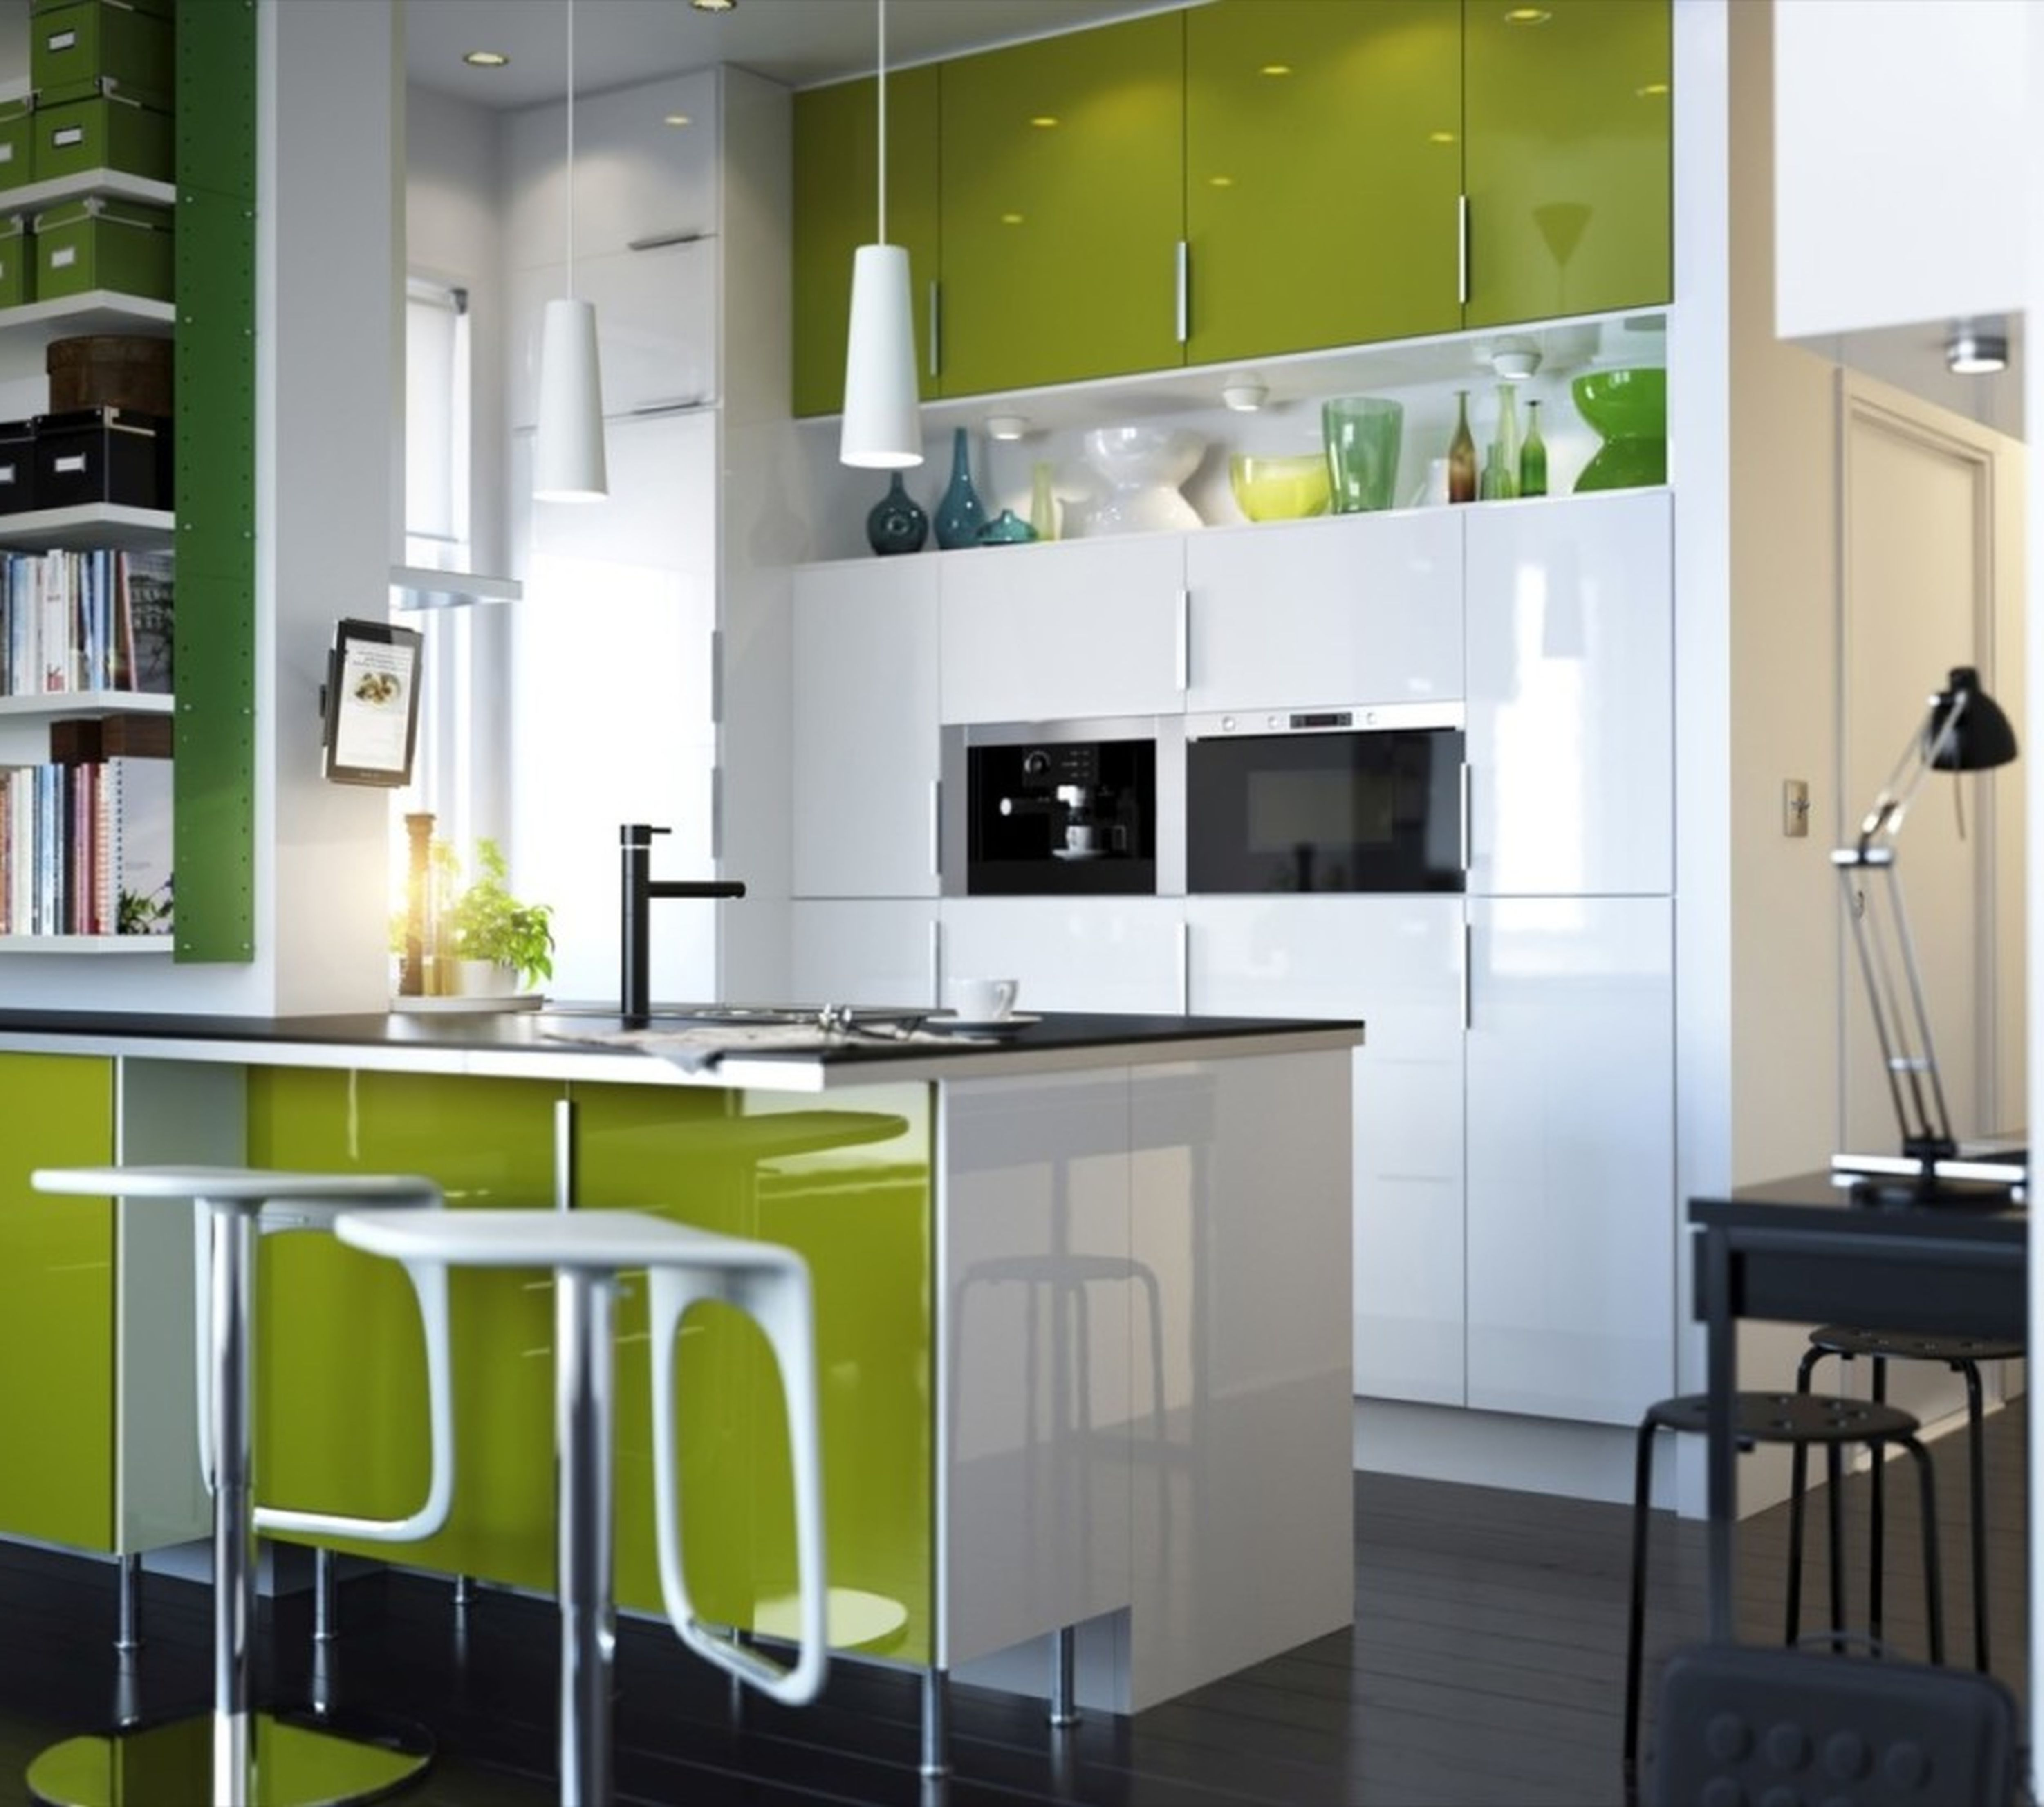 Lime Green Kitchen Ideas: Interior Design Ideas For Apartment Living